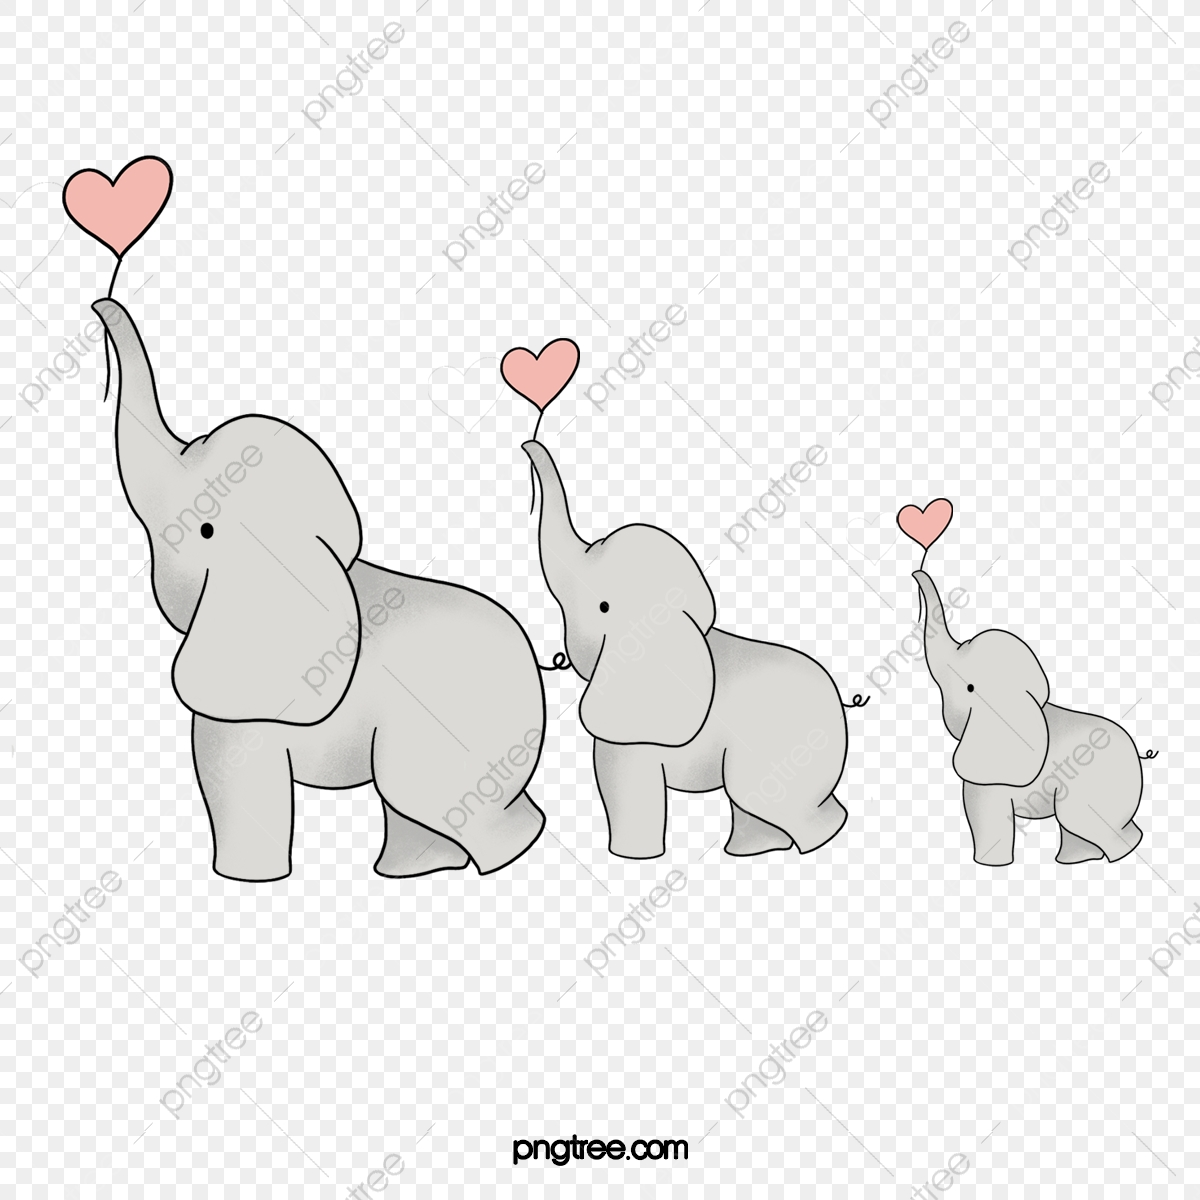 Elephant Vector Elephant Clipart Lovely Elephant Png Transparent Clipart Image And Psd File For Free Download Pikbest has 298 cute elephant vector design images templates for free. https pngtree com freepng elephant vector 2730239 html